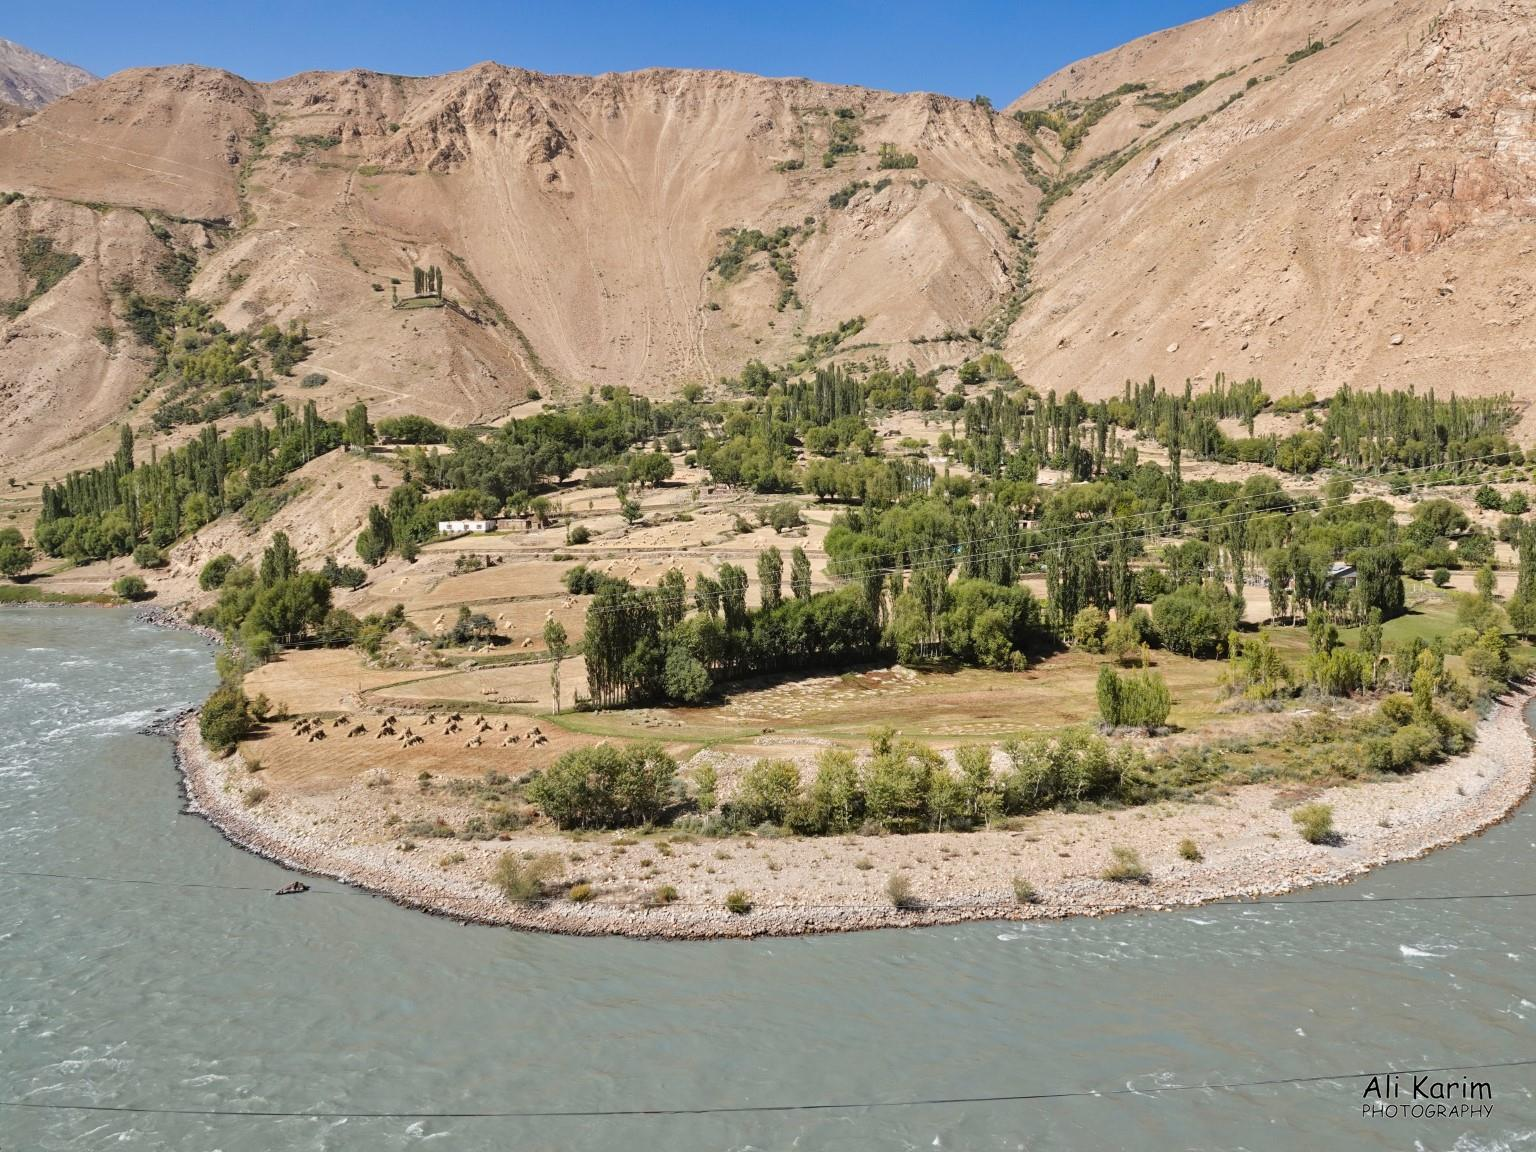 Onto Khorog, Tajikistan, Nice farming settlement in Afghanistan along the Panj river